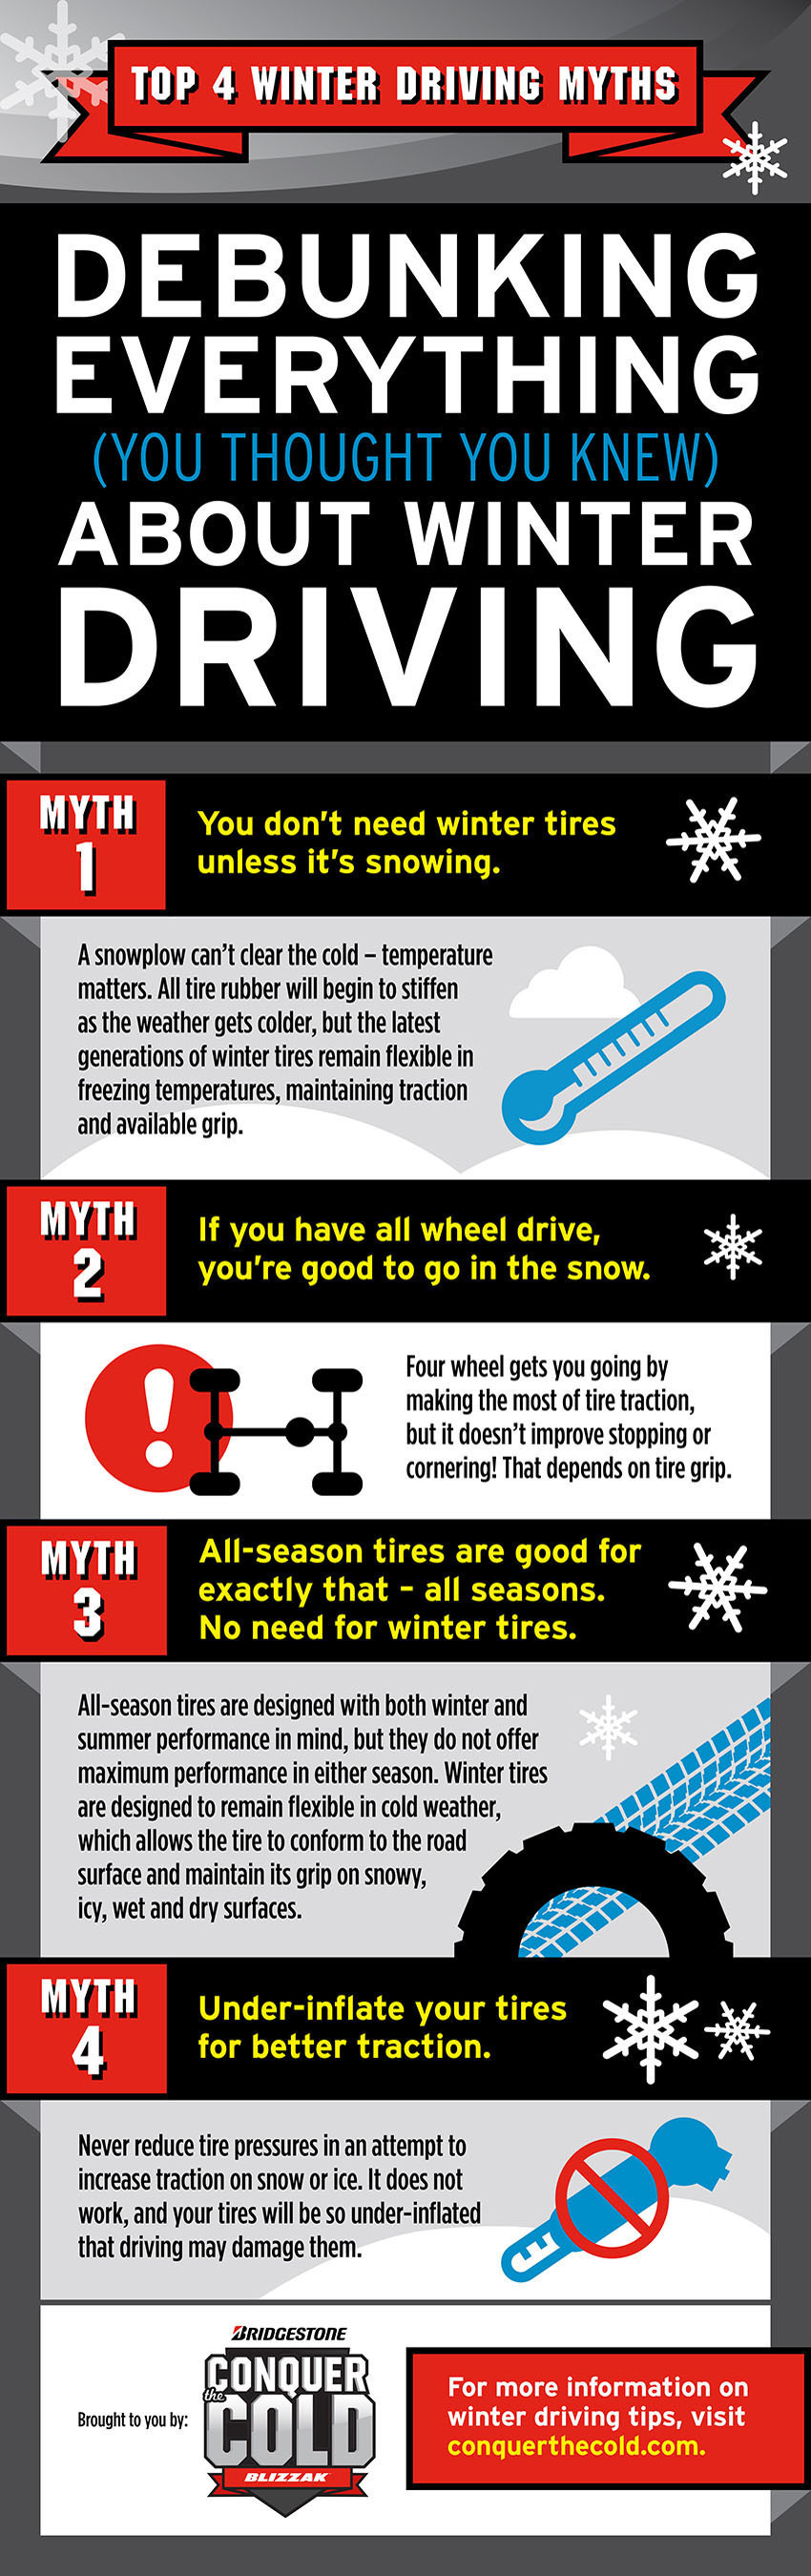 Bridgestone infographic debunks four winter driving myths.  (PRNewsFoto/Bridgestone Americas, Inc.)